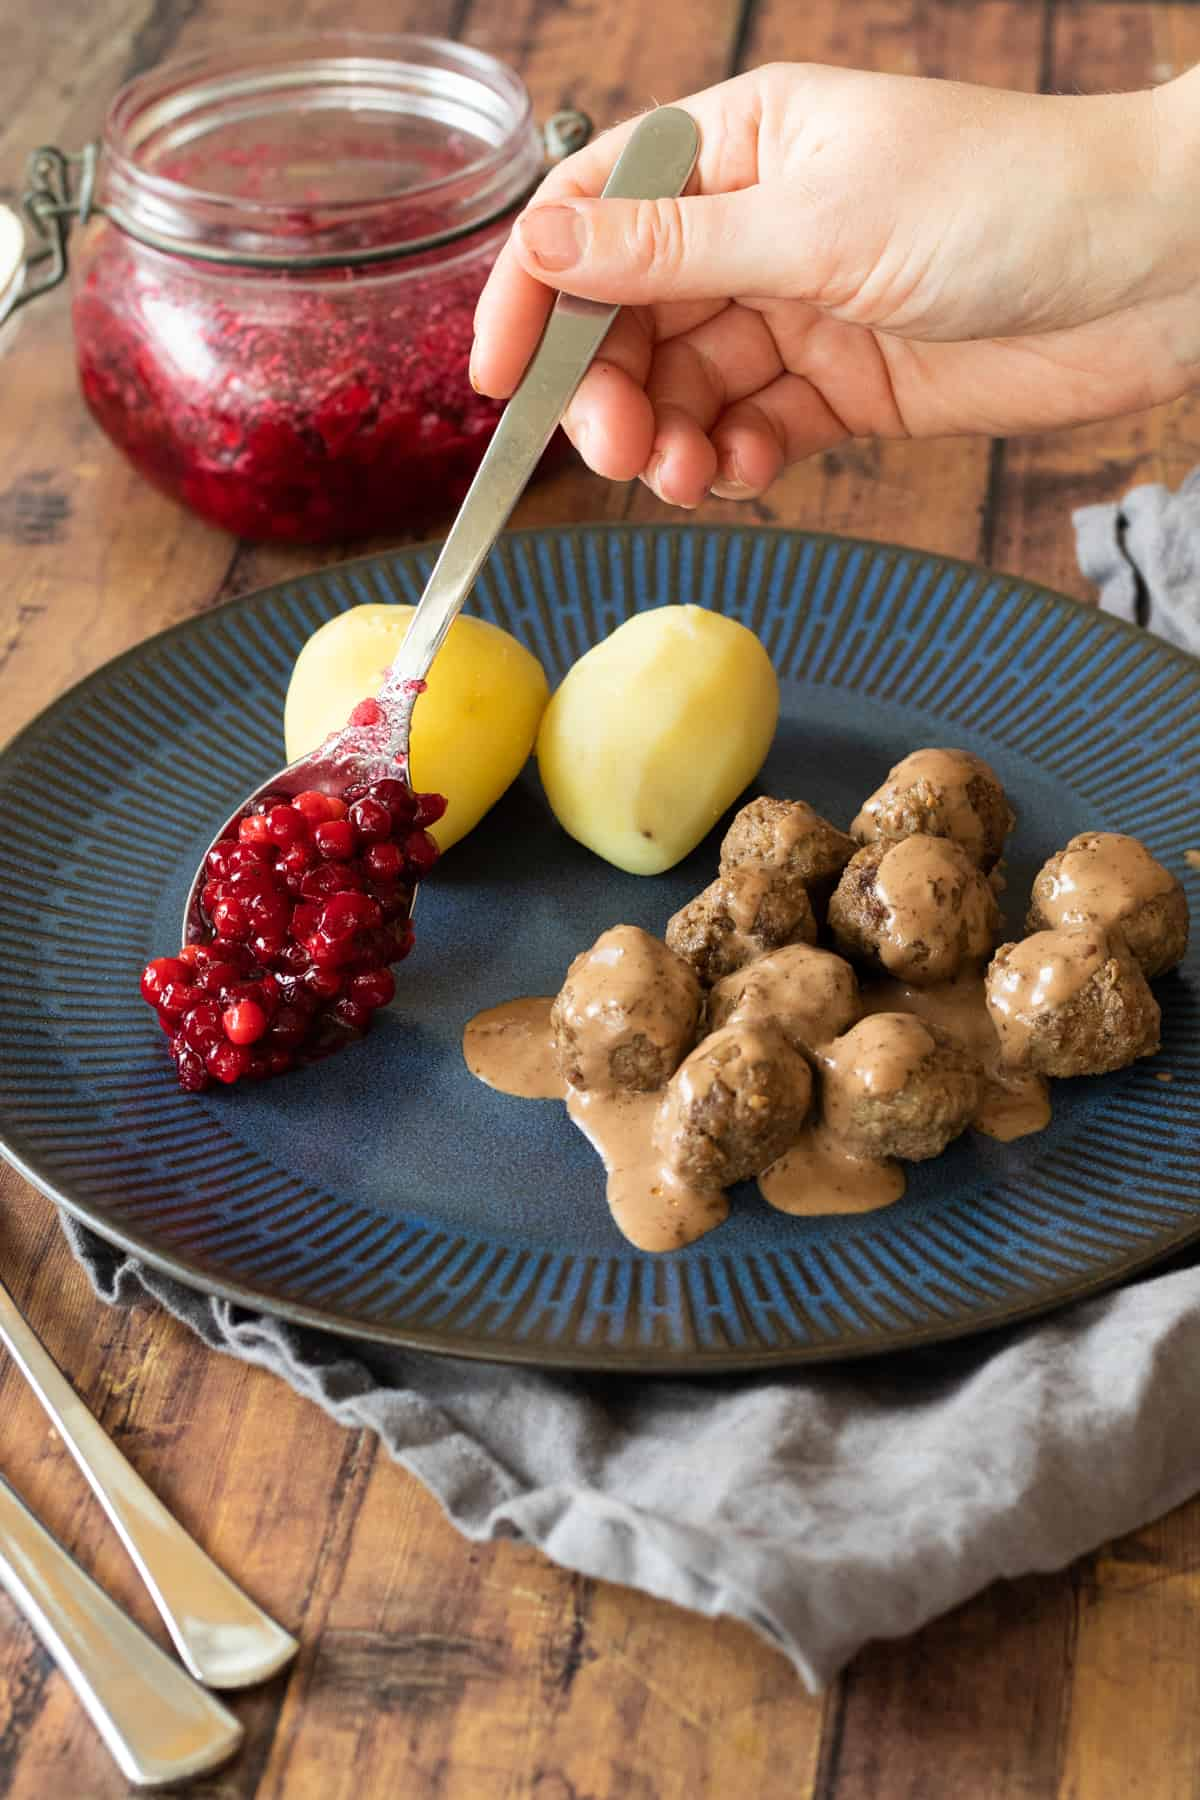 meatballs, potatoes and lingonberries on a blue plate